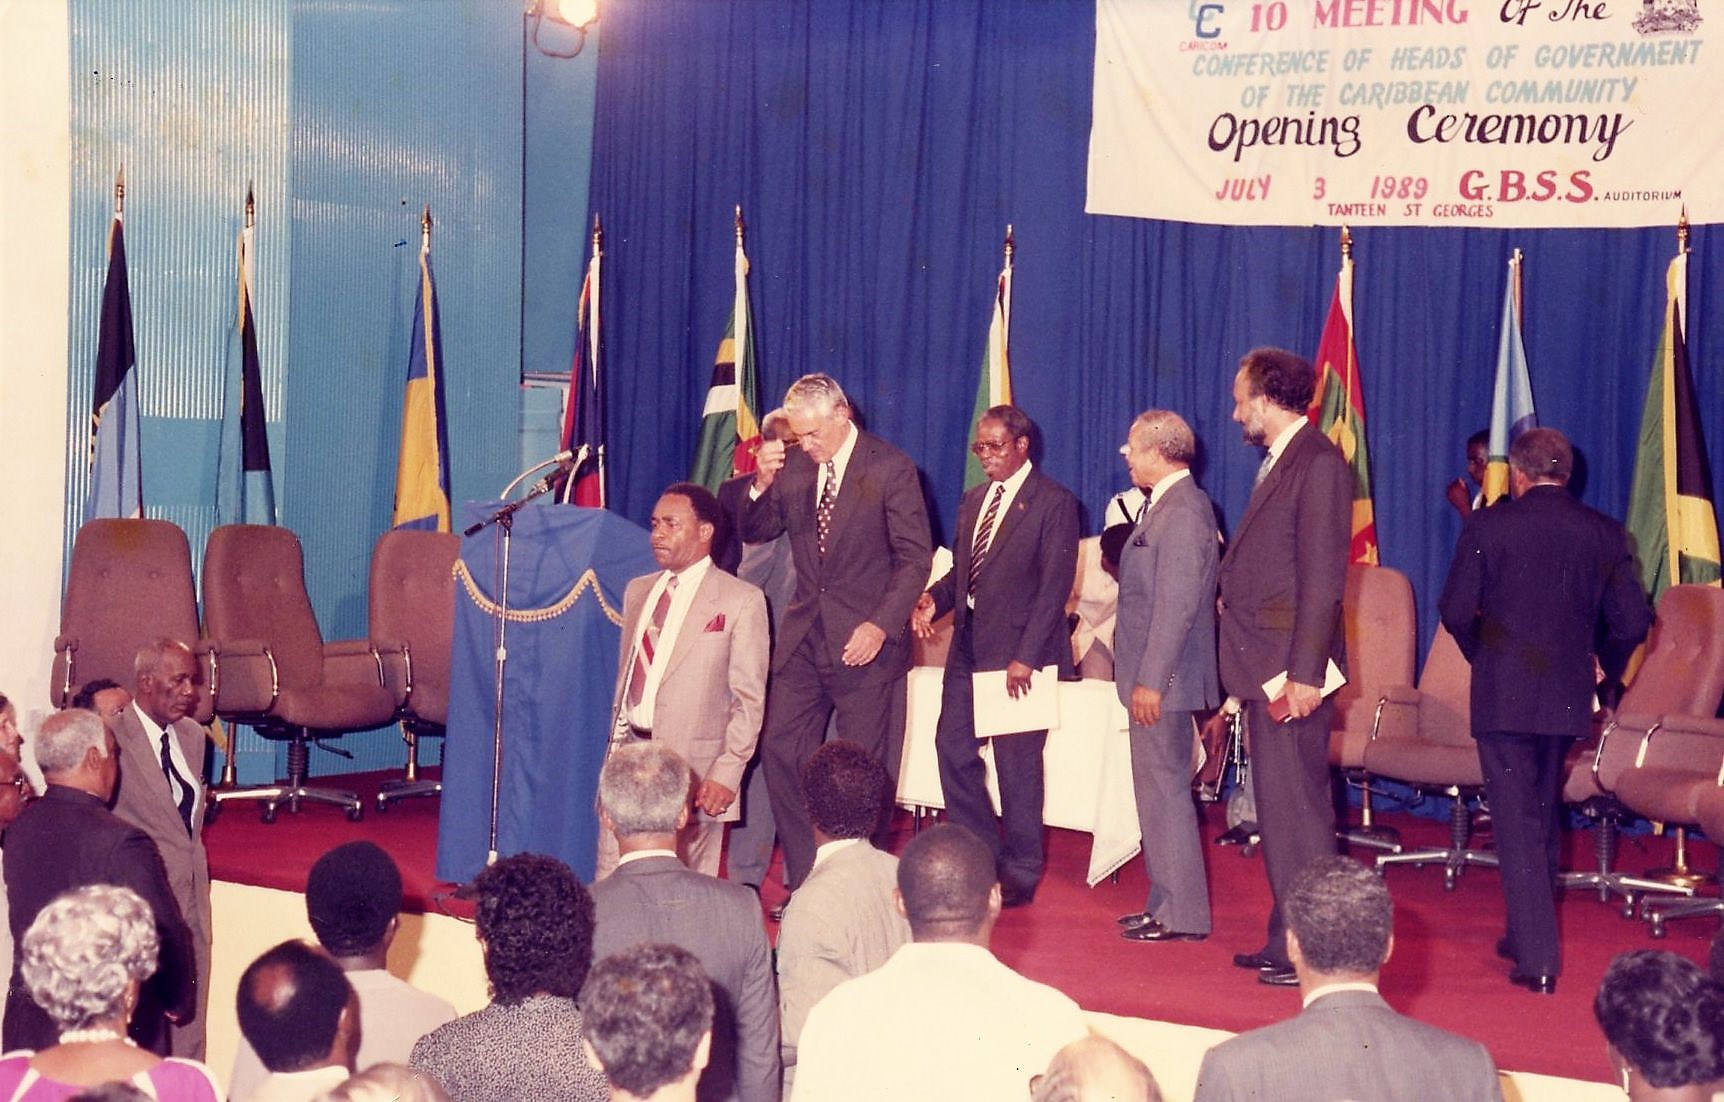 CARICOM Heads of Government leave the stage at the conclusion of the Opening Ceremony of the Conference of Heads of Government in Grenada, 1989